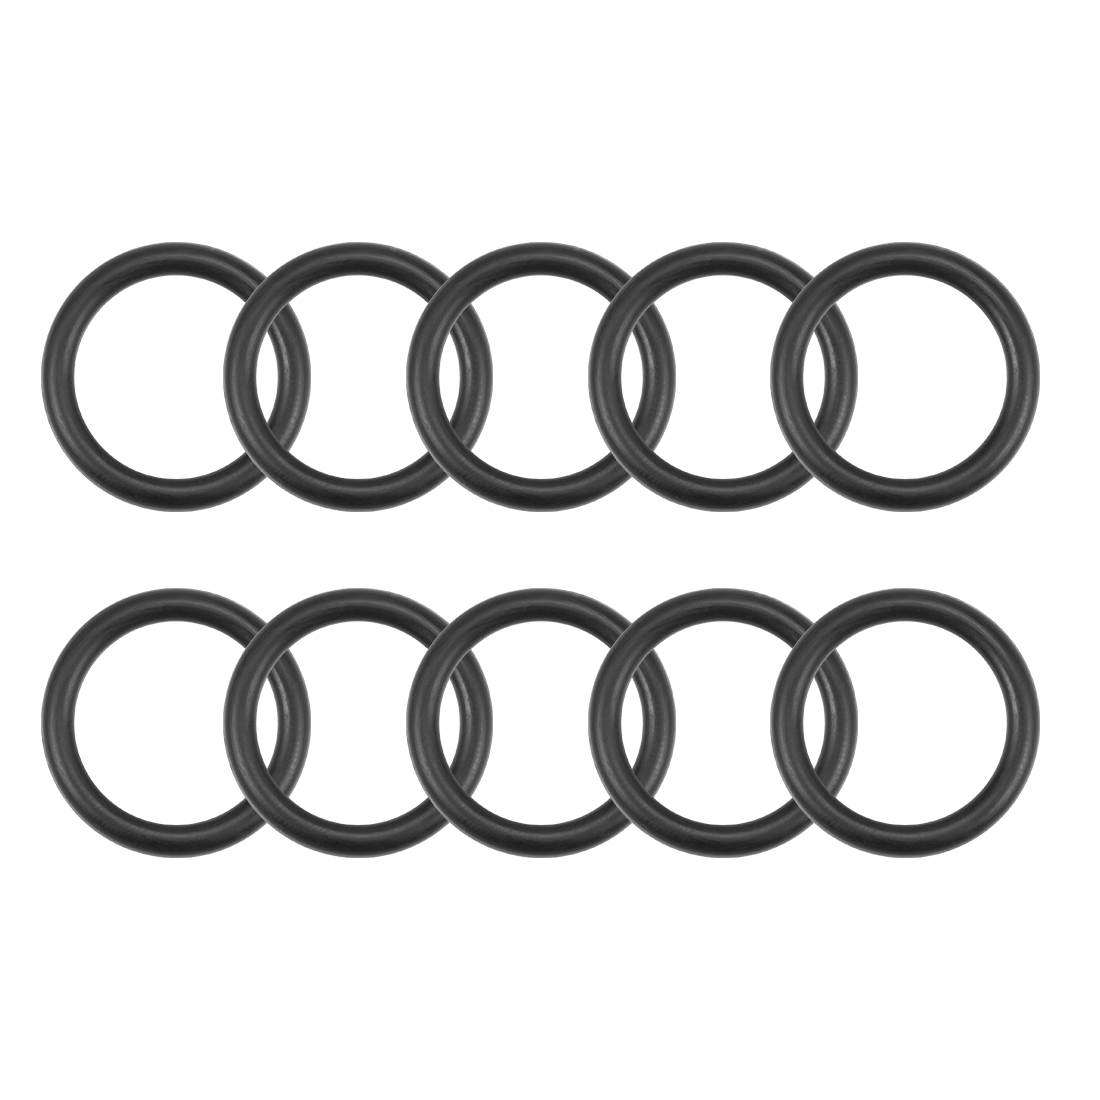 O-Rings Nitrile Rubber 14mm x 19.3mm x 2.65mm Round Seal Gasket 10 Pcs